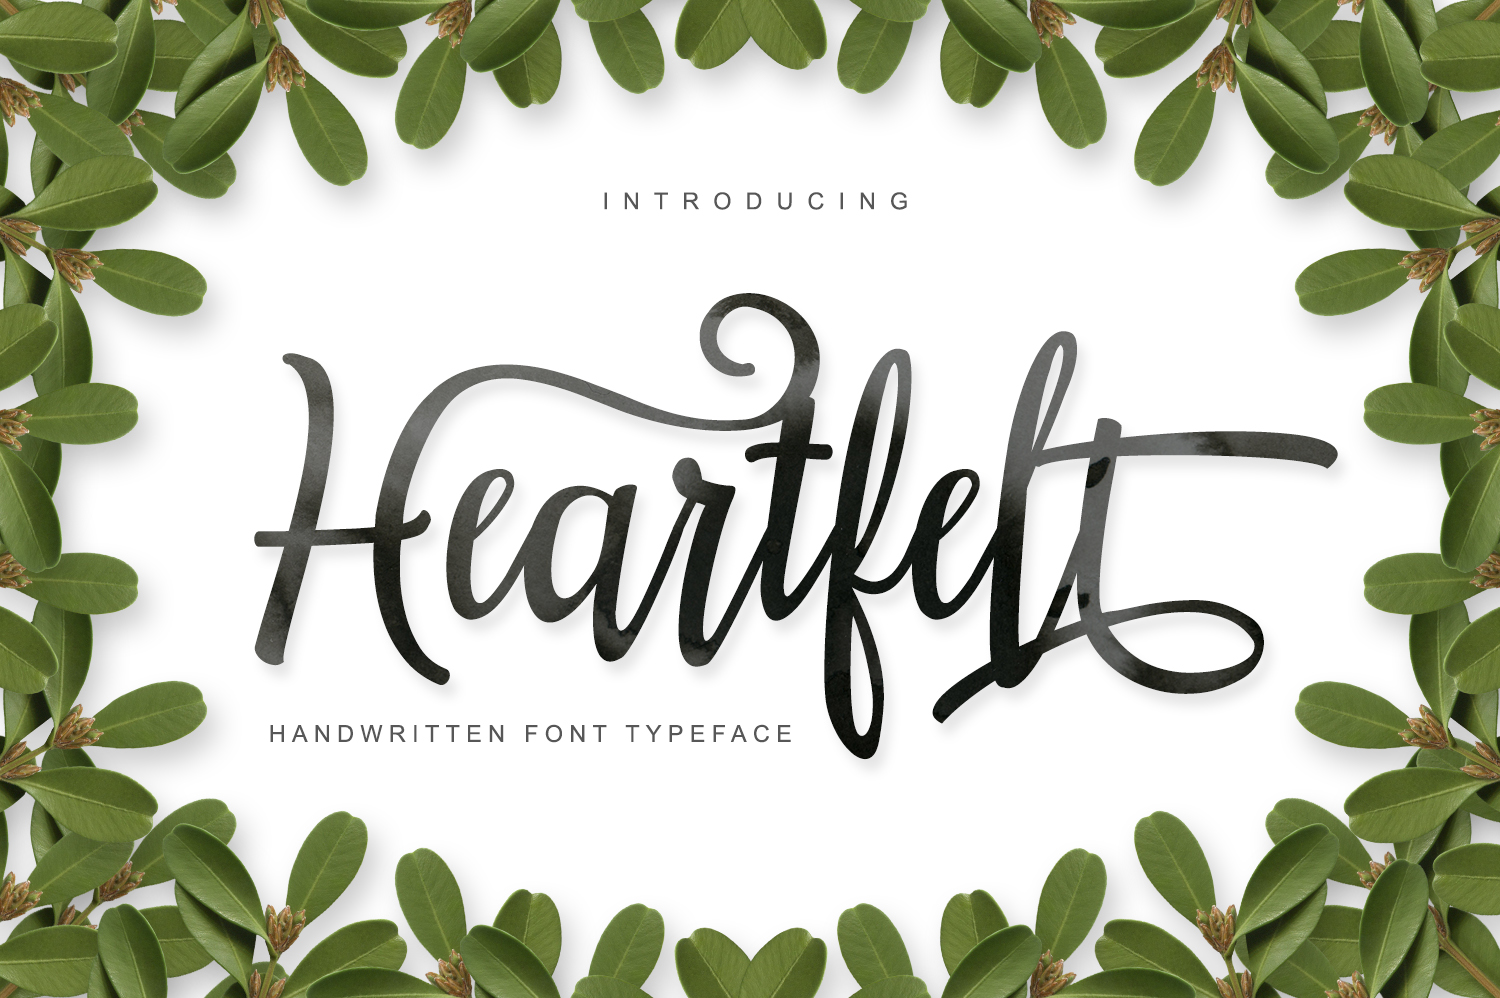 Heartfelt Script & Handwritten Font By No Gravity Type